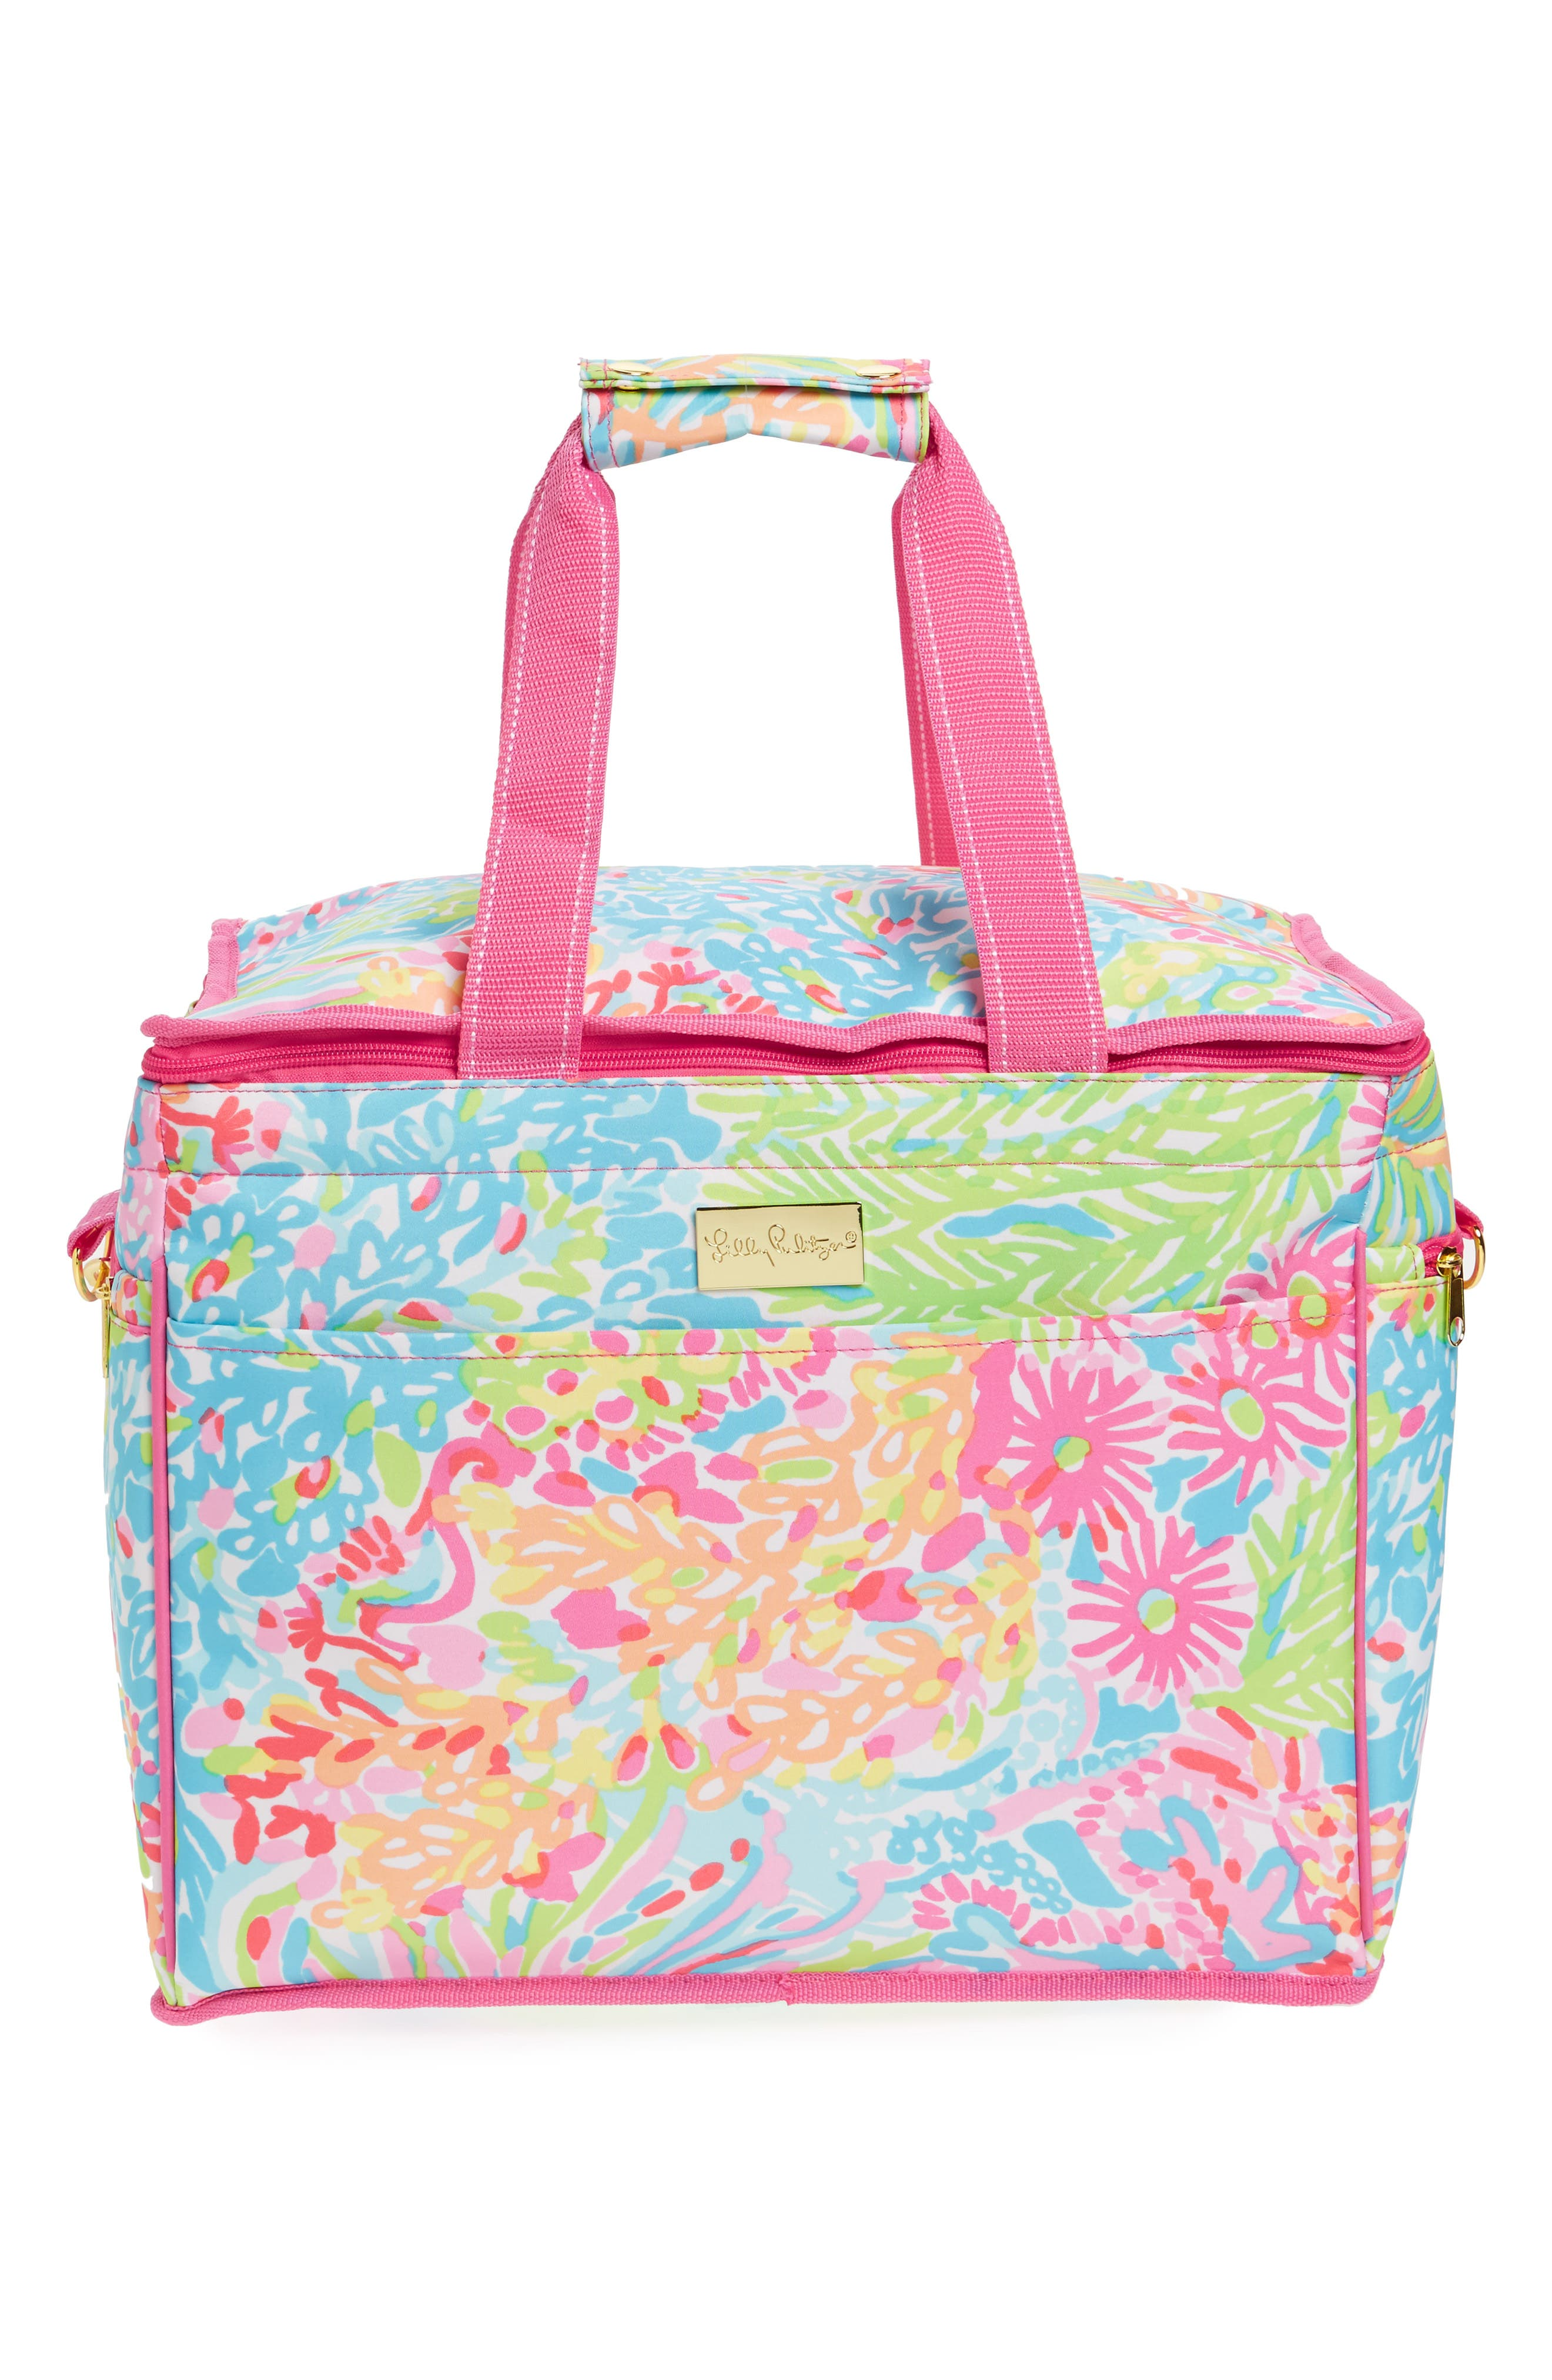 LILLY PULITZER® Insulated Cooler